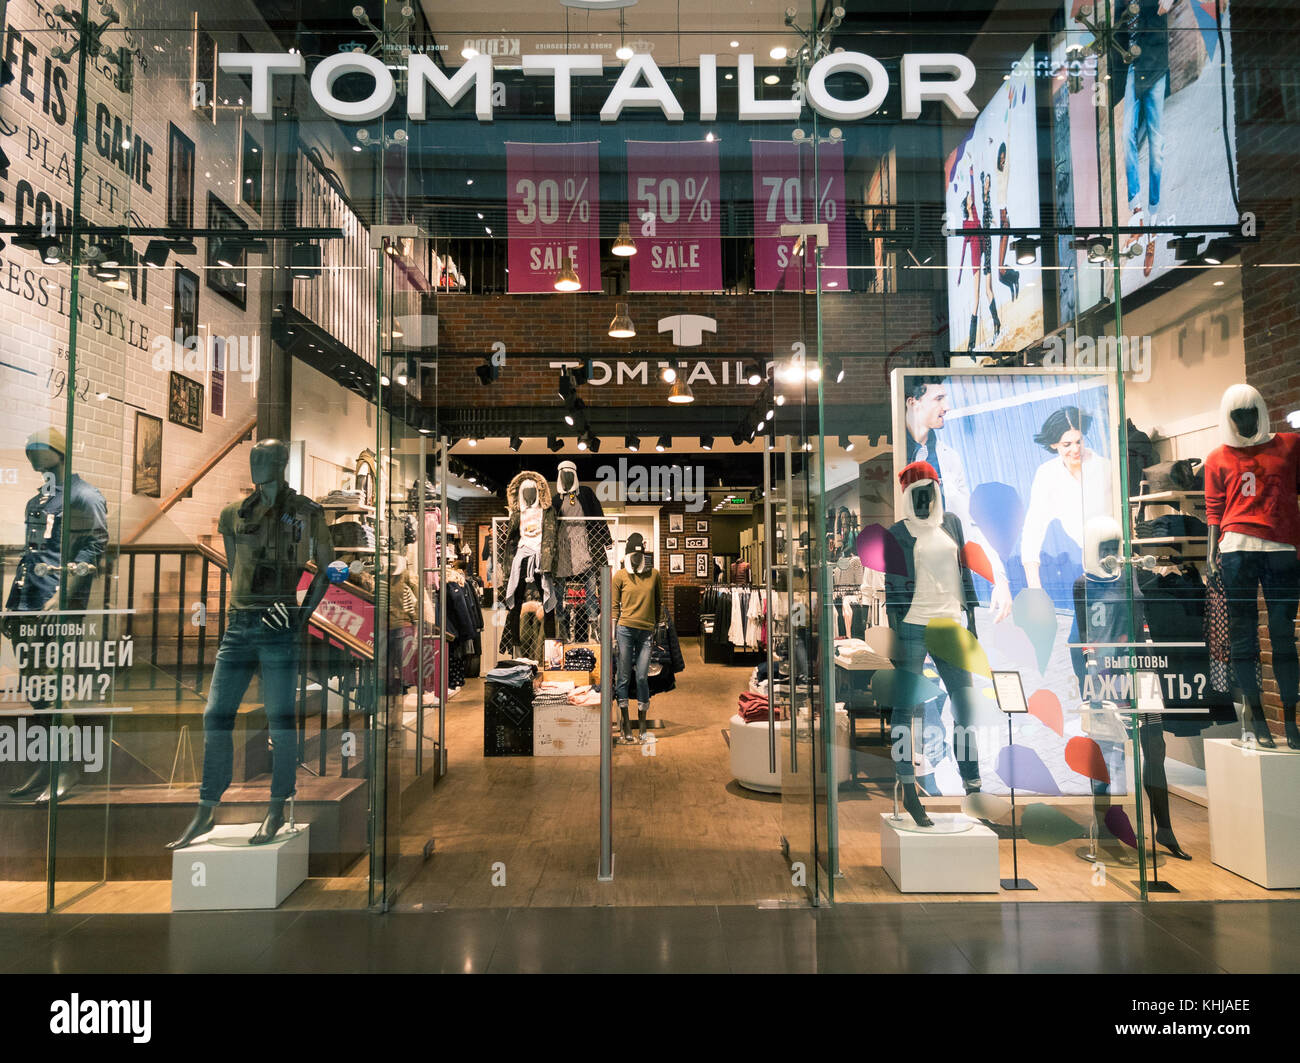 Tom Tailoer Tom Tailor Clothing Shop Interior In The Columbus Mall Stock Photo